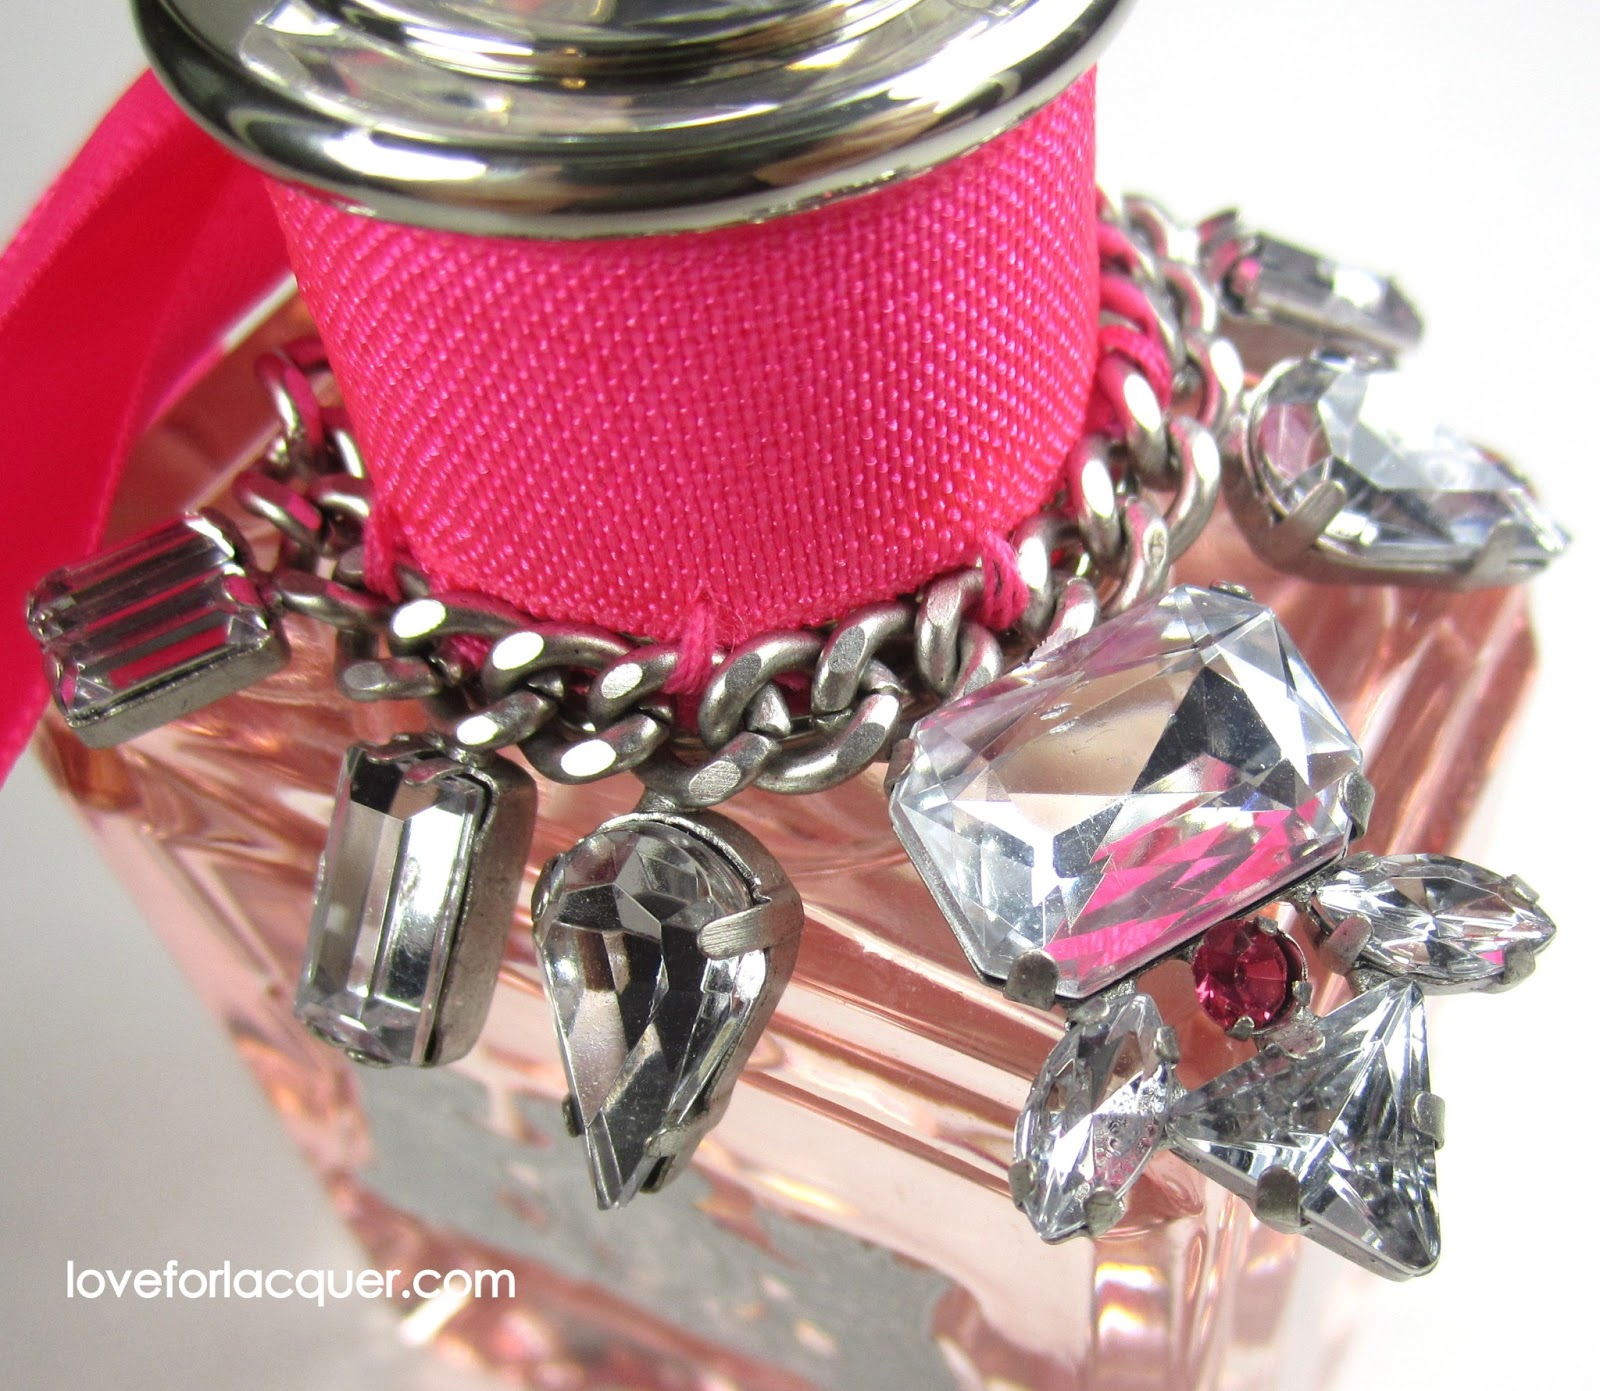 Juicy Couture - Couture La La Fragrance Review - Love for Lacquer 40adc97a3